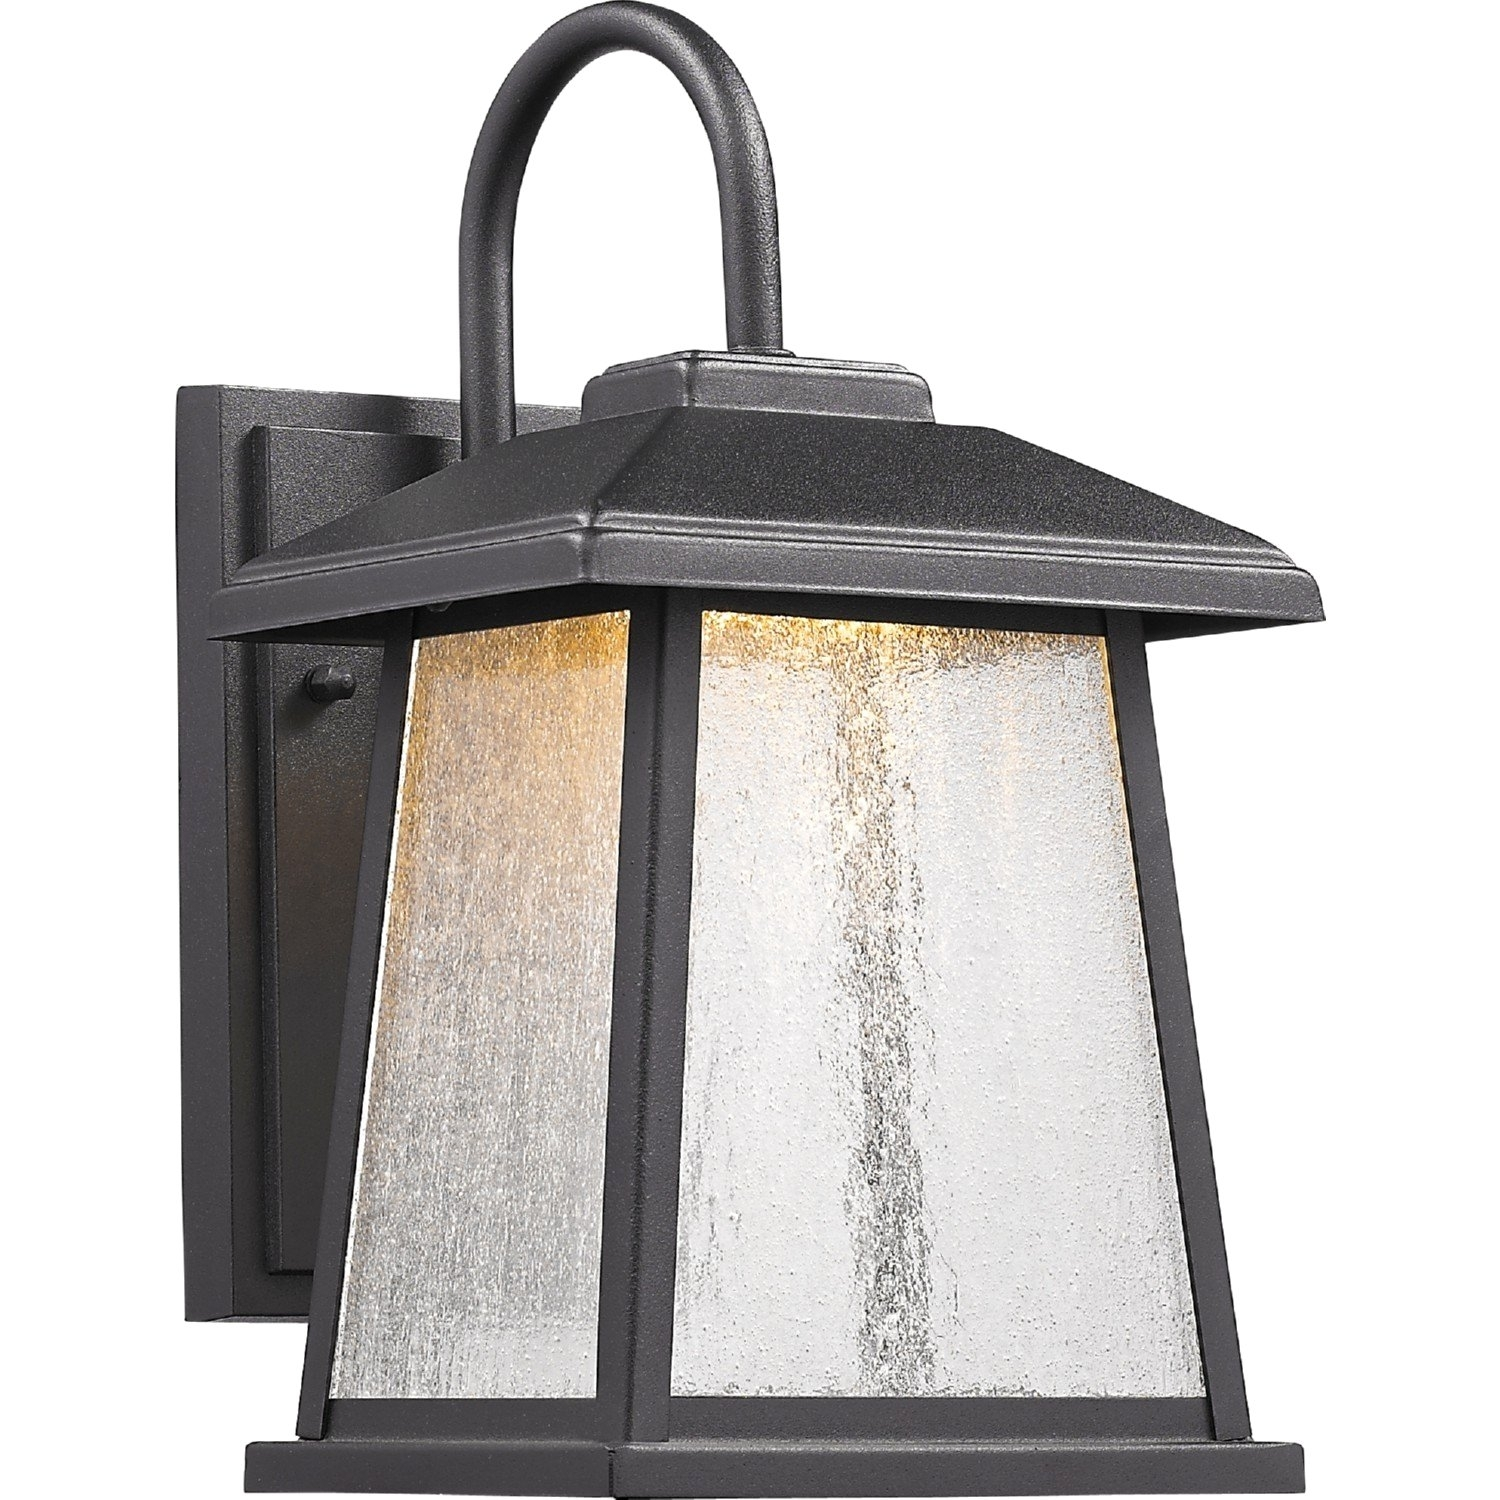 Bunnings Brackets : The Outrageous Favorite Led Wall Sconce Home throughout Outdoor Lanterns at Bunnings (Image 3 of 20)